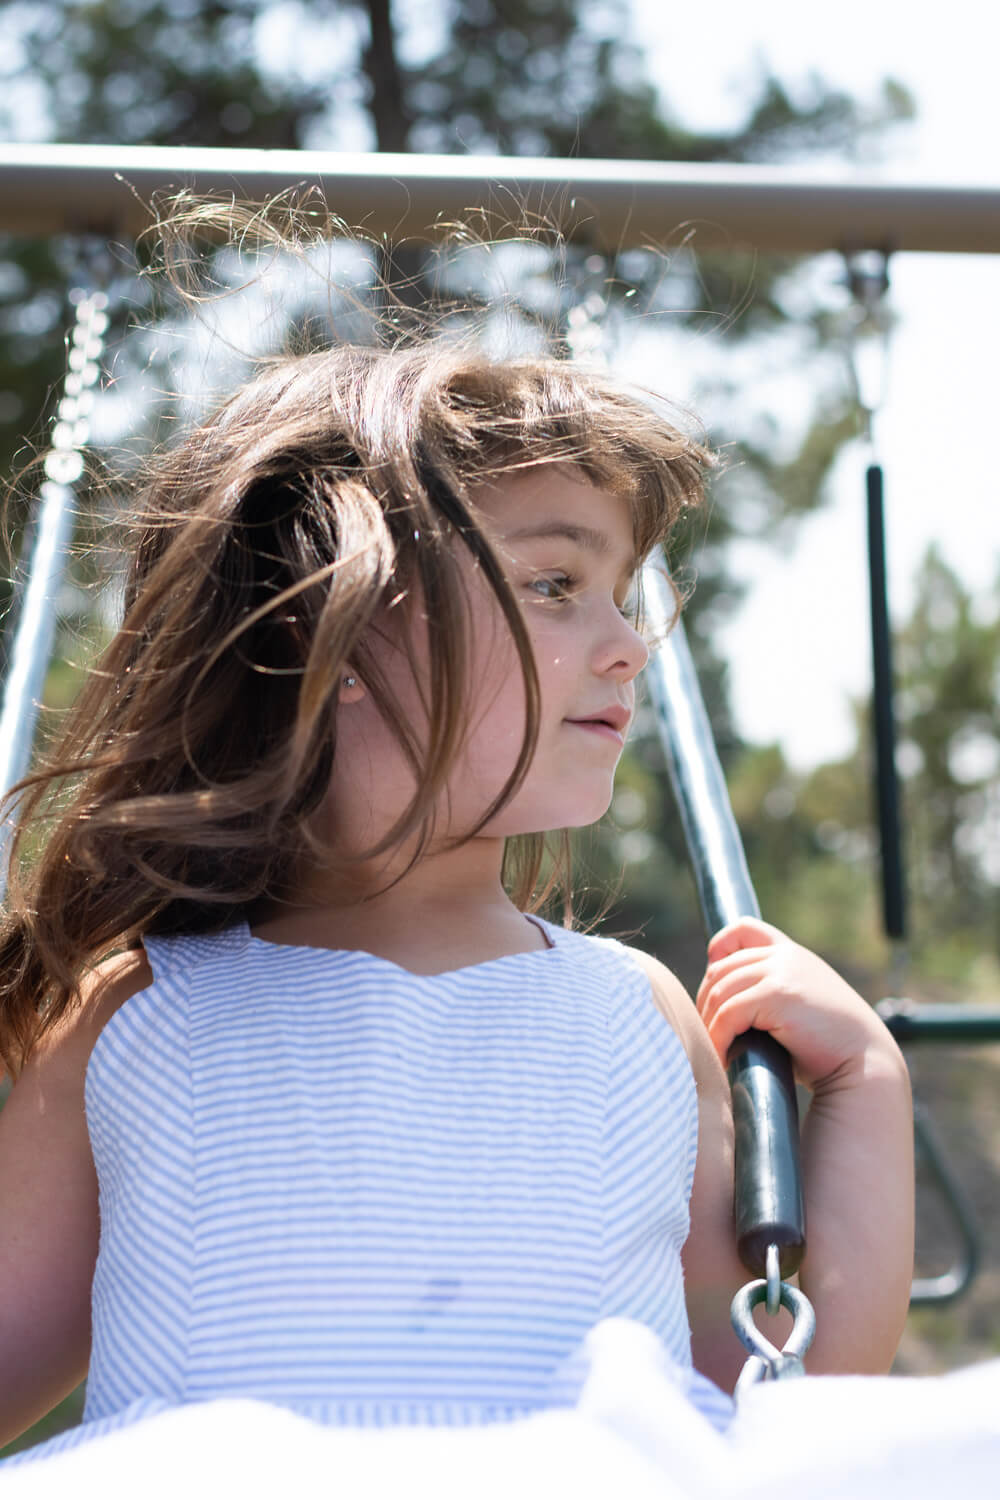 Portrait of a young girl swinging on a swing, her hair is flying in the breeze